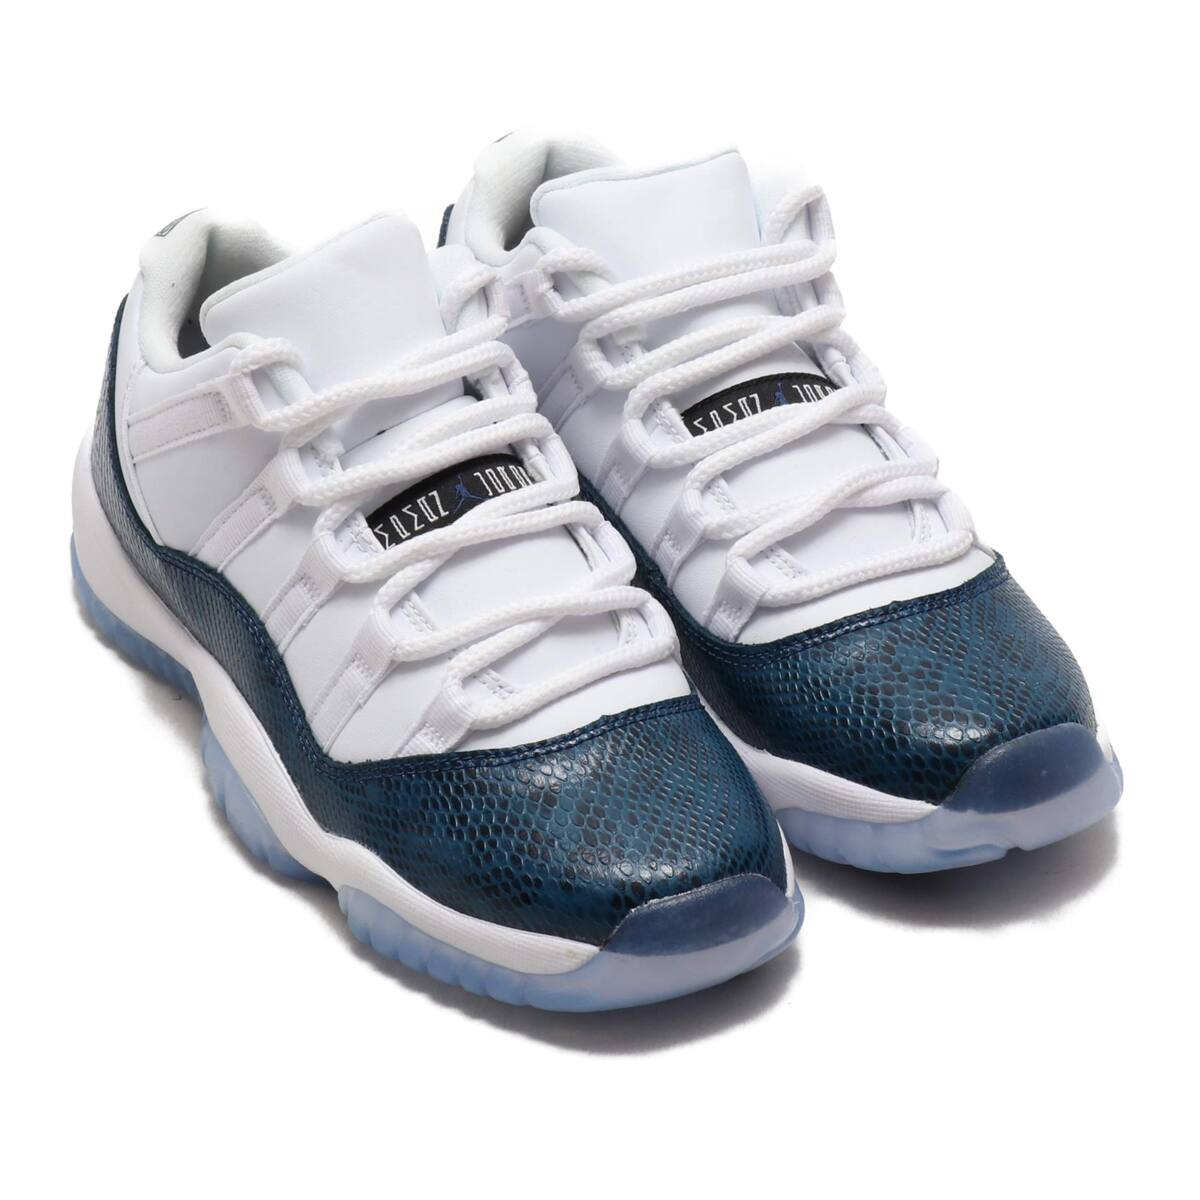 NIKE AIR JORDAN 11 RETRO LOW LE GS WHITE/BLACK-NAVY 19SU-S_photo_large